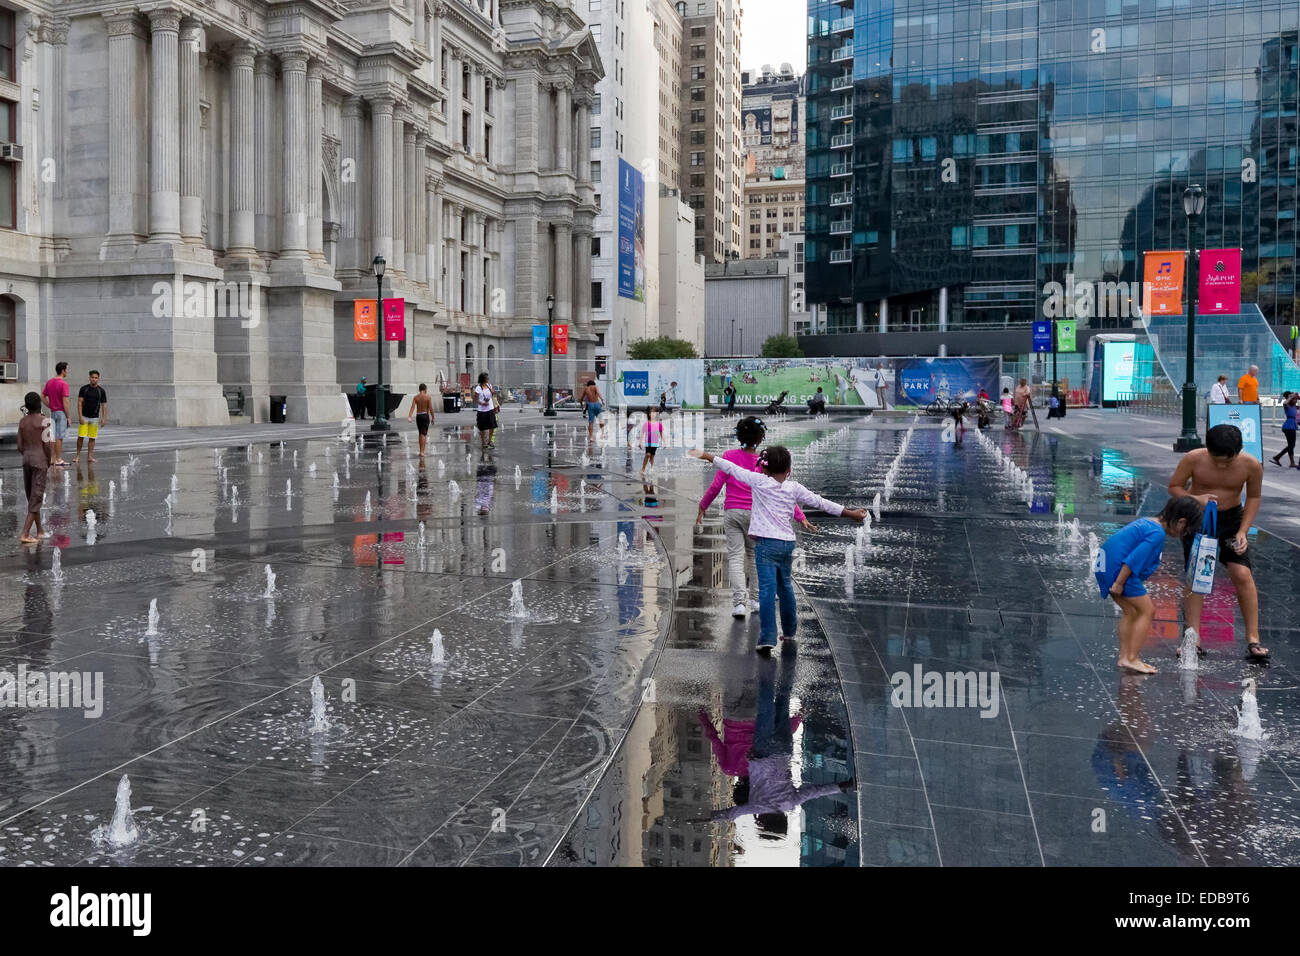 Kids playing in fountains in front of City Hall, Philadelphia, Pennsylvania - Stock Image